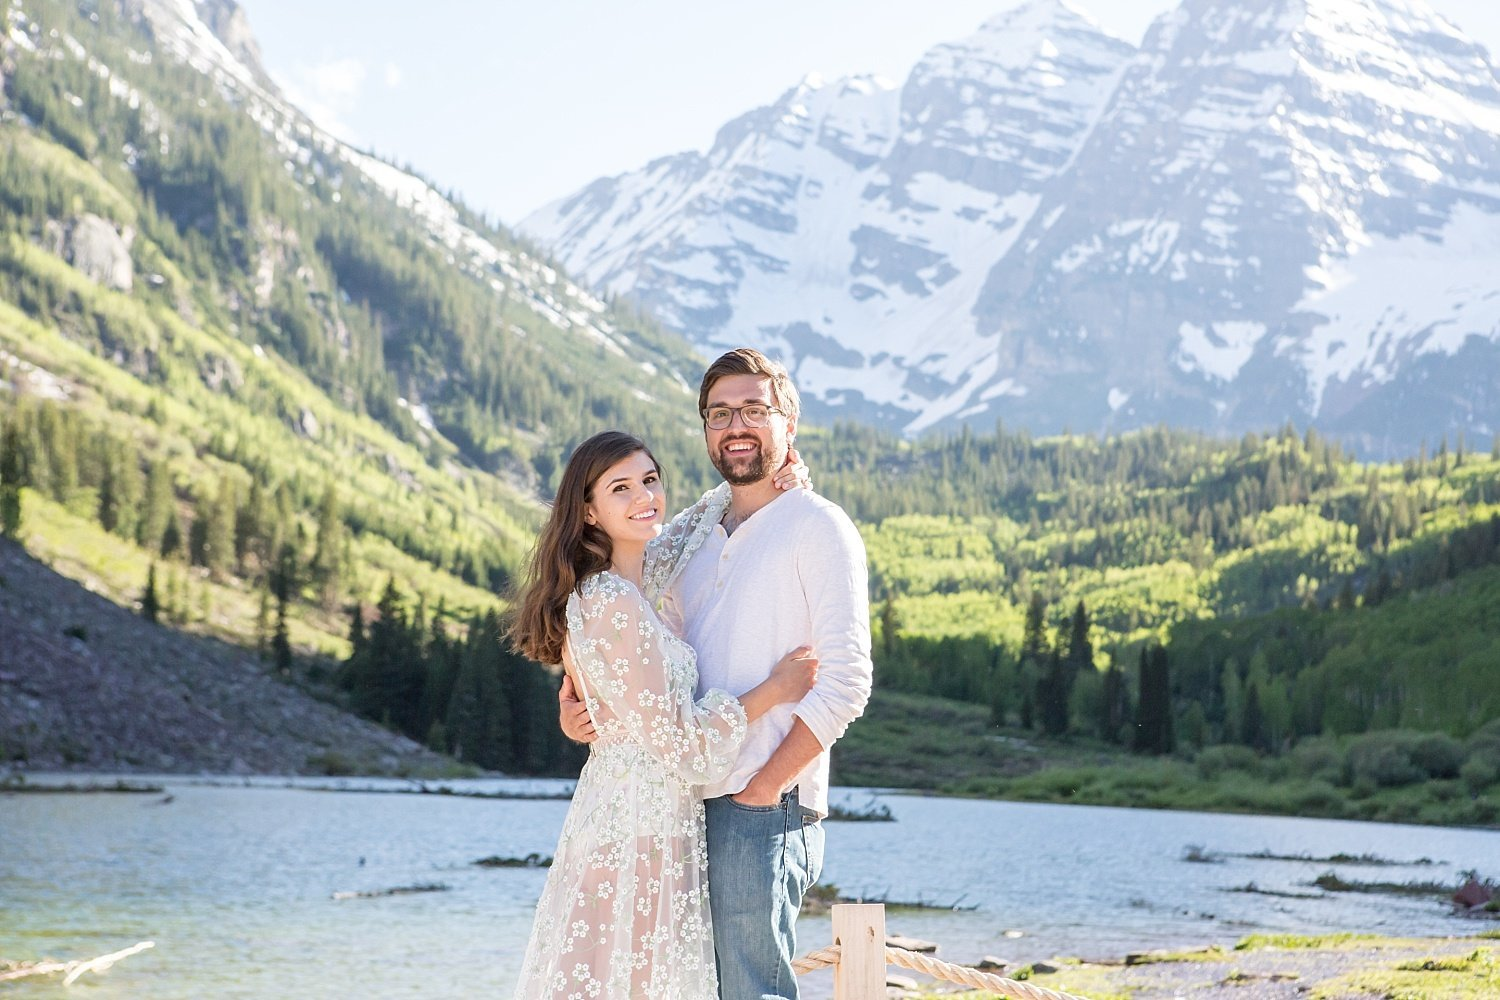 Colorado Engagement photography in Colorado